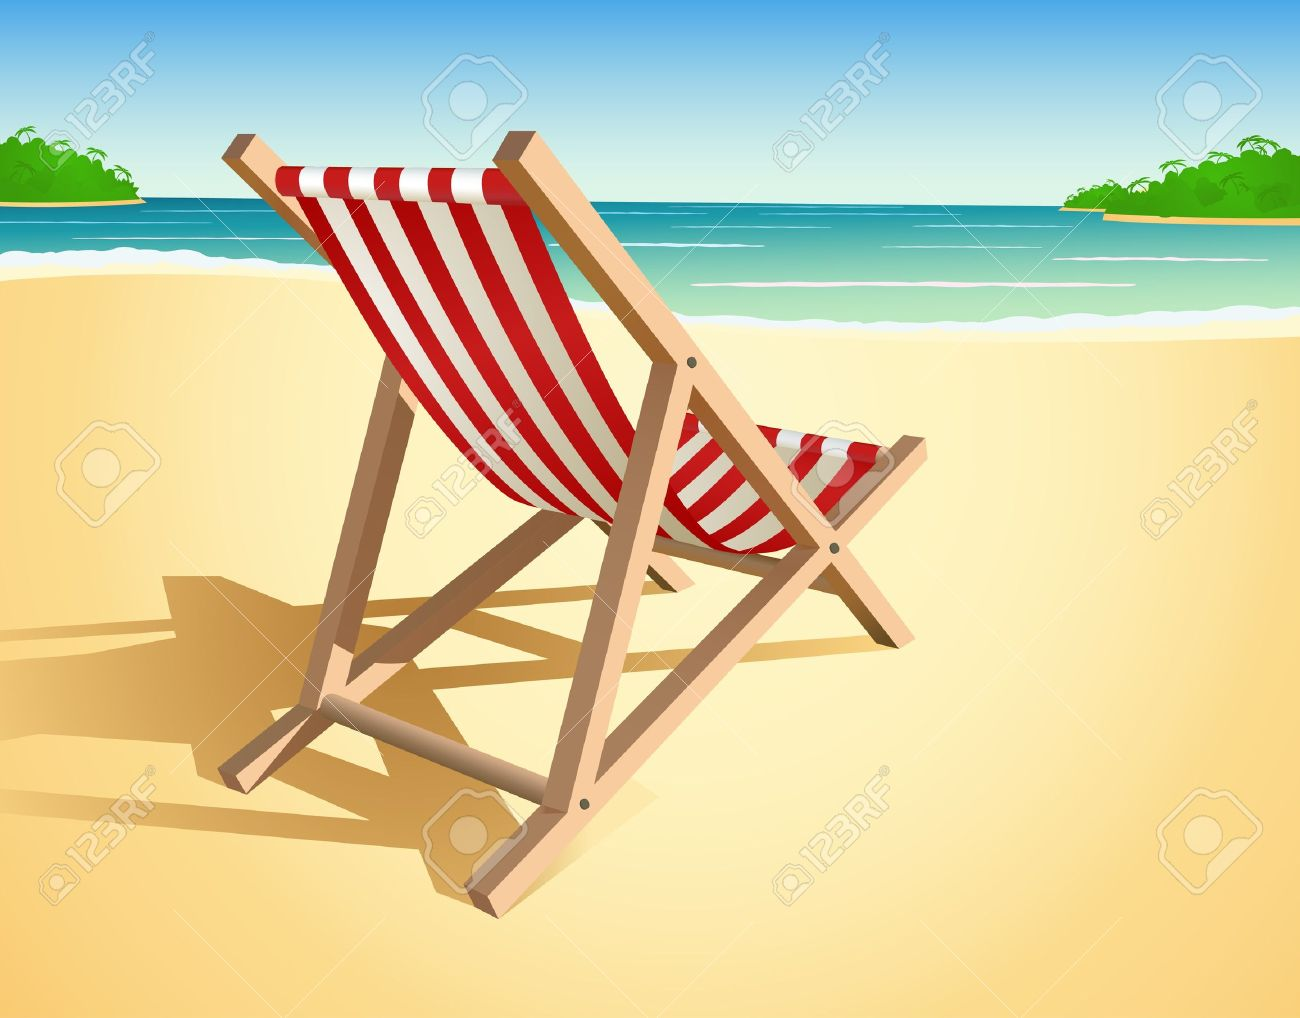 Beach Chair Vector 10,613 beach chair stock illustrations, cliparts and royalty free